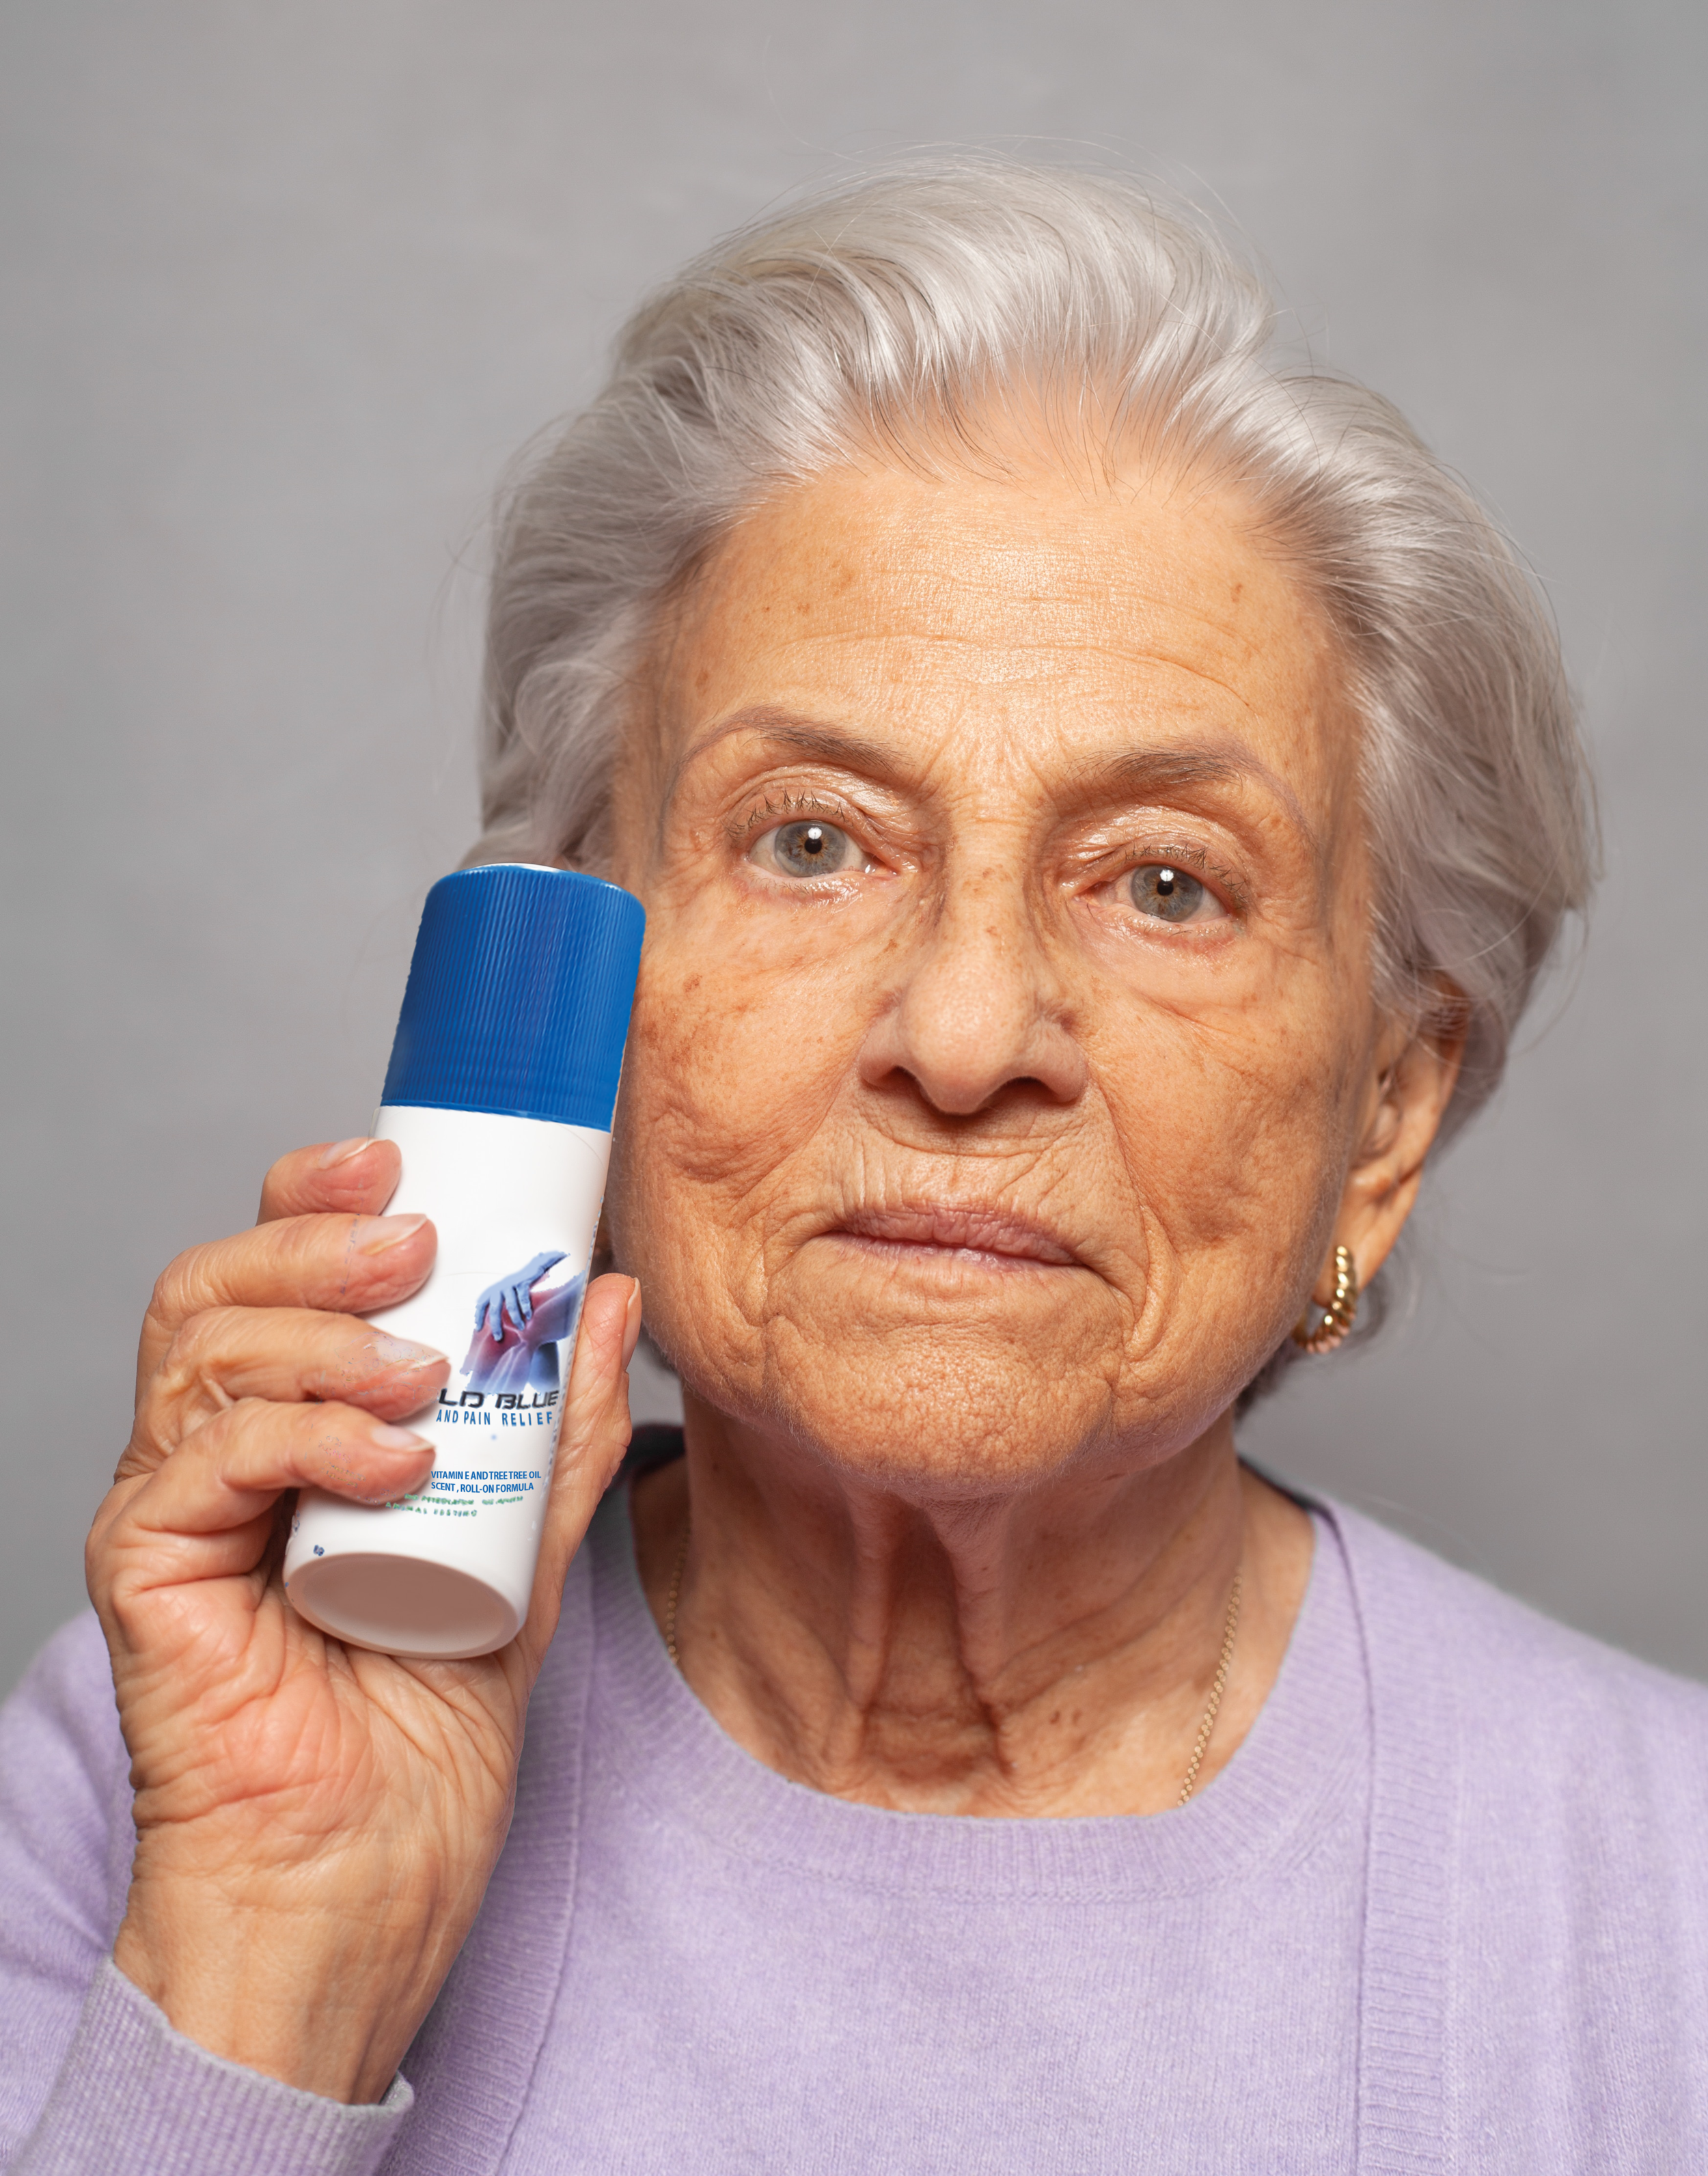 QUICK AND EASY APPLICATION:  Cold Blue Joint and Pain Relief is extremely easy to apply, and will provide you with immediate temporary relief from your joint pain. Simply take the top off of the tube, roll on the no-mess remedy to the area in which you're experiencing pain, and feel the immediate and effective temporary relief from pain